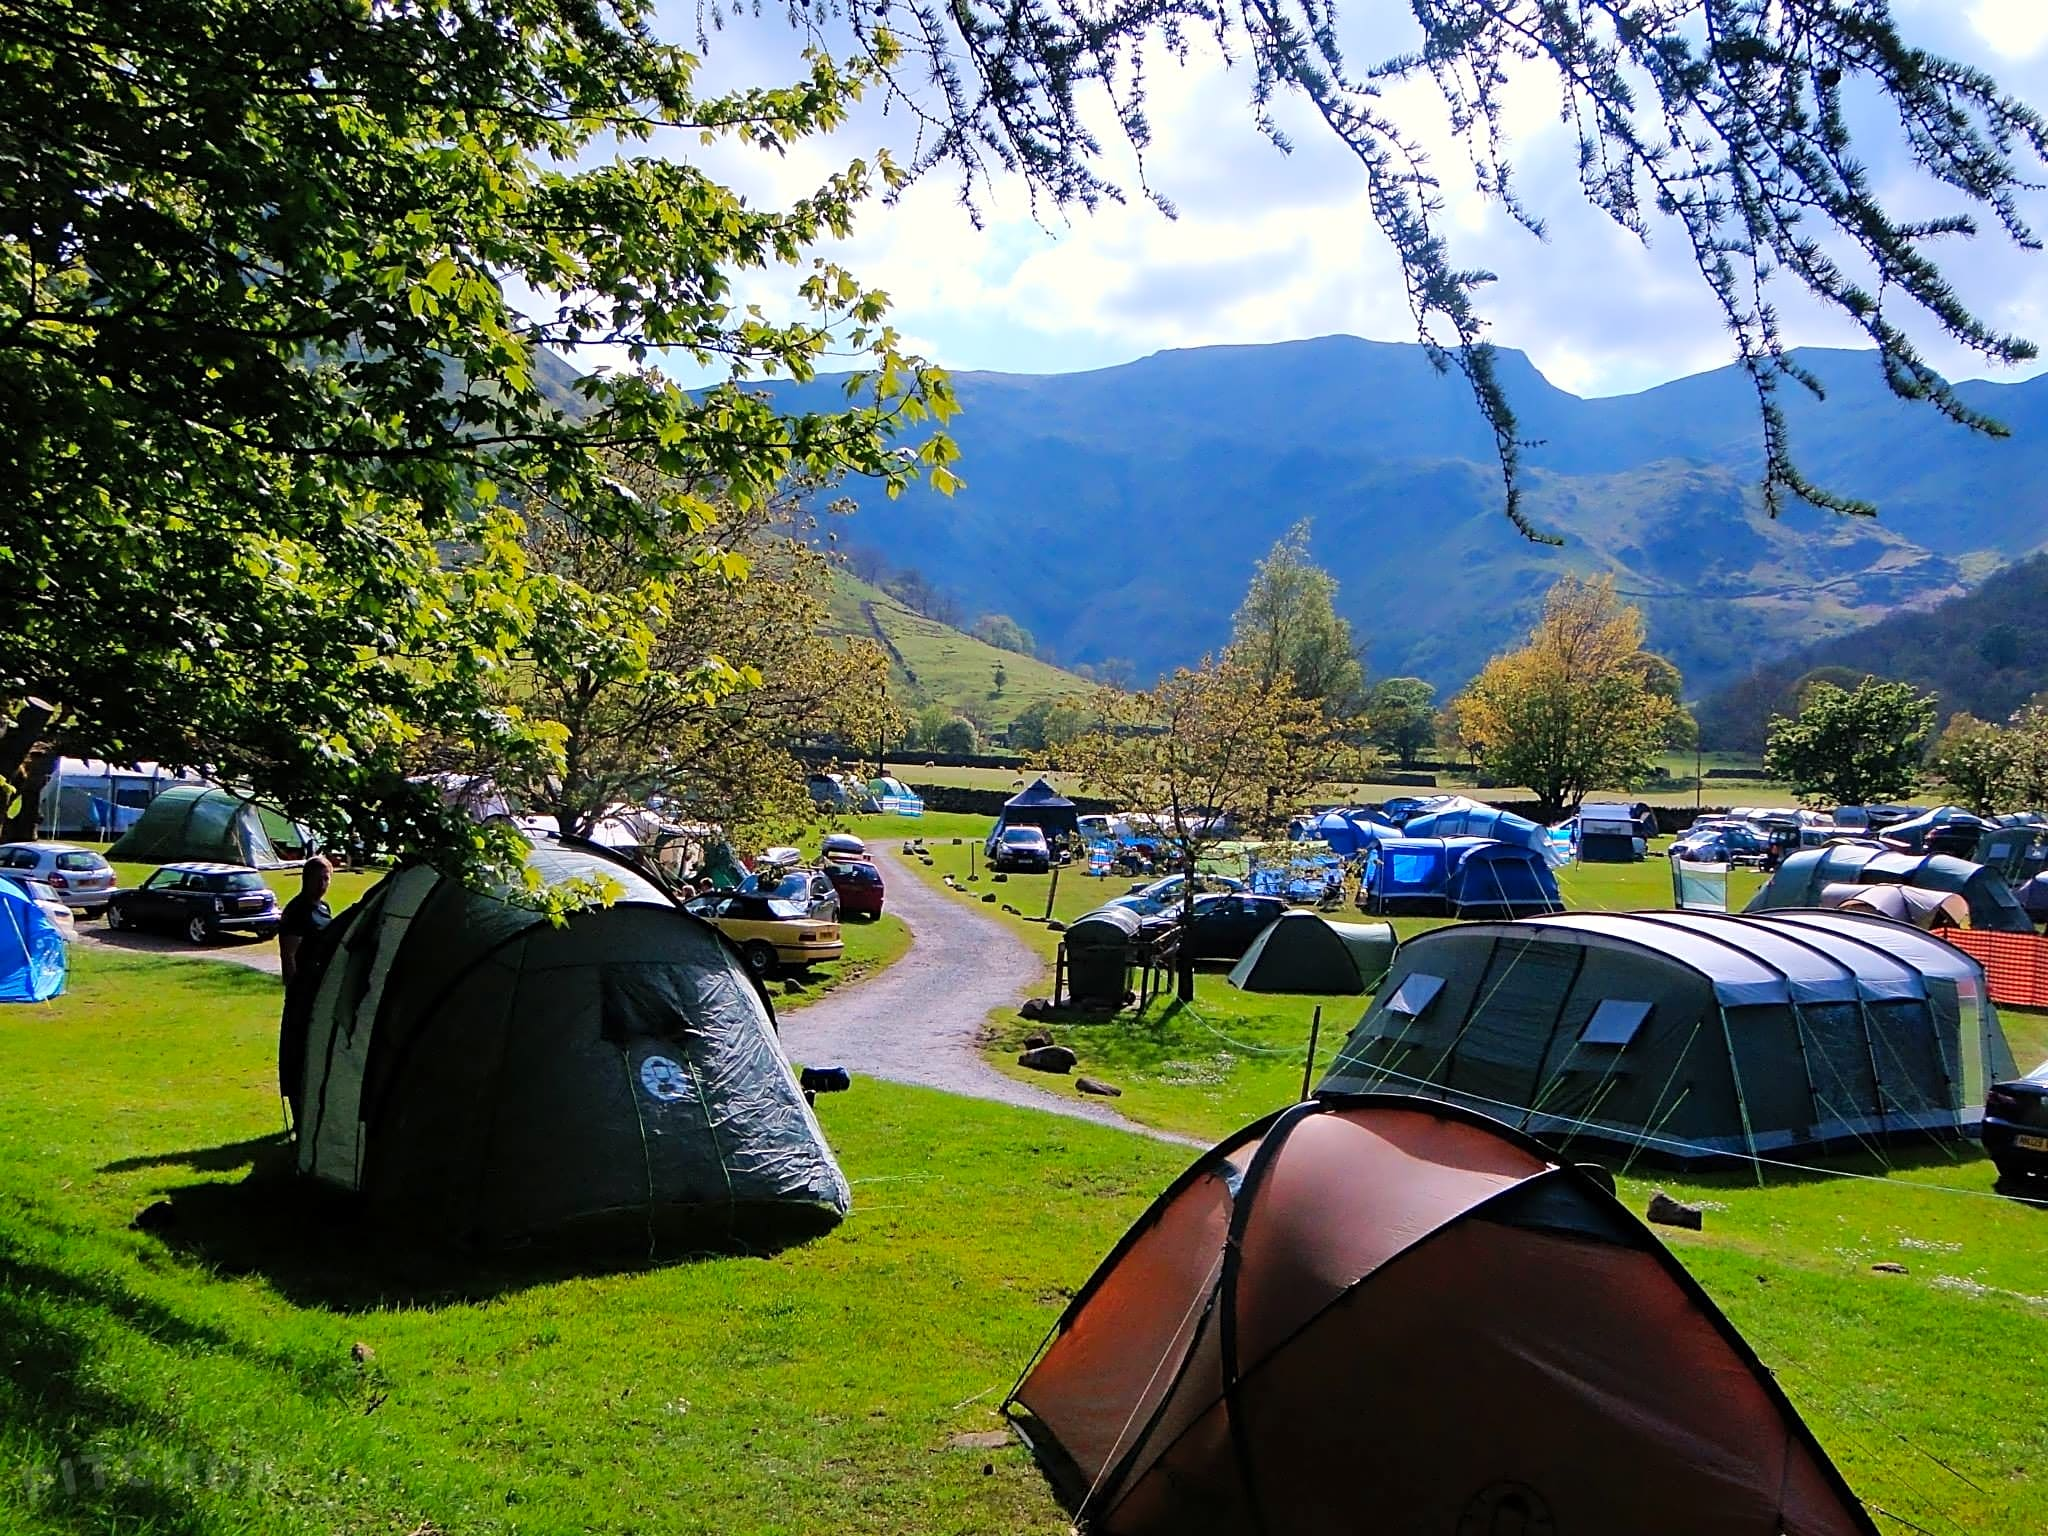 Sykeside camping park penrith updated 2019 prices - Campsites in cumbria with swimming pool ...